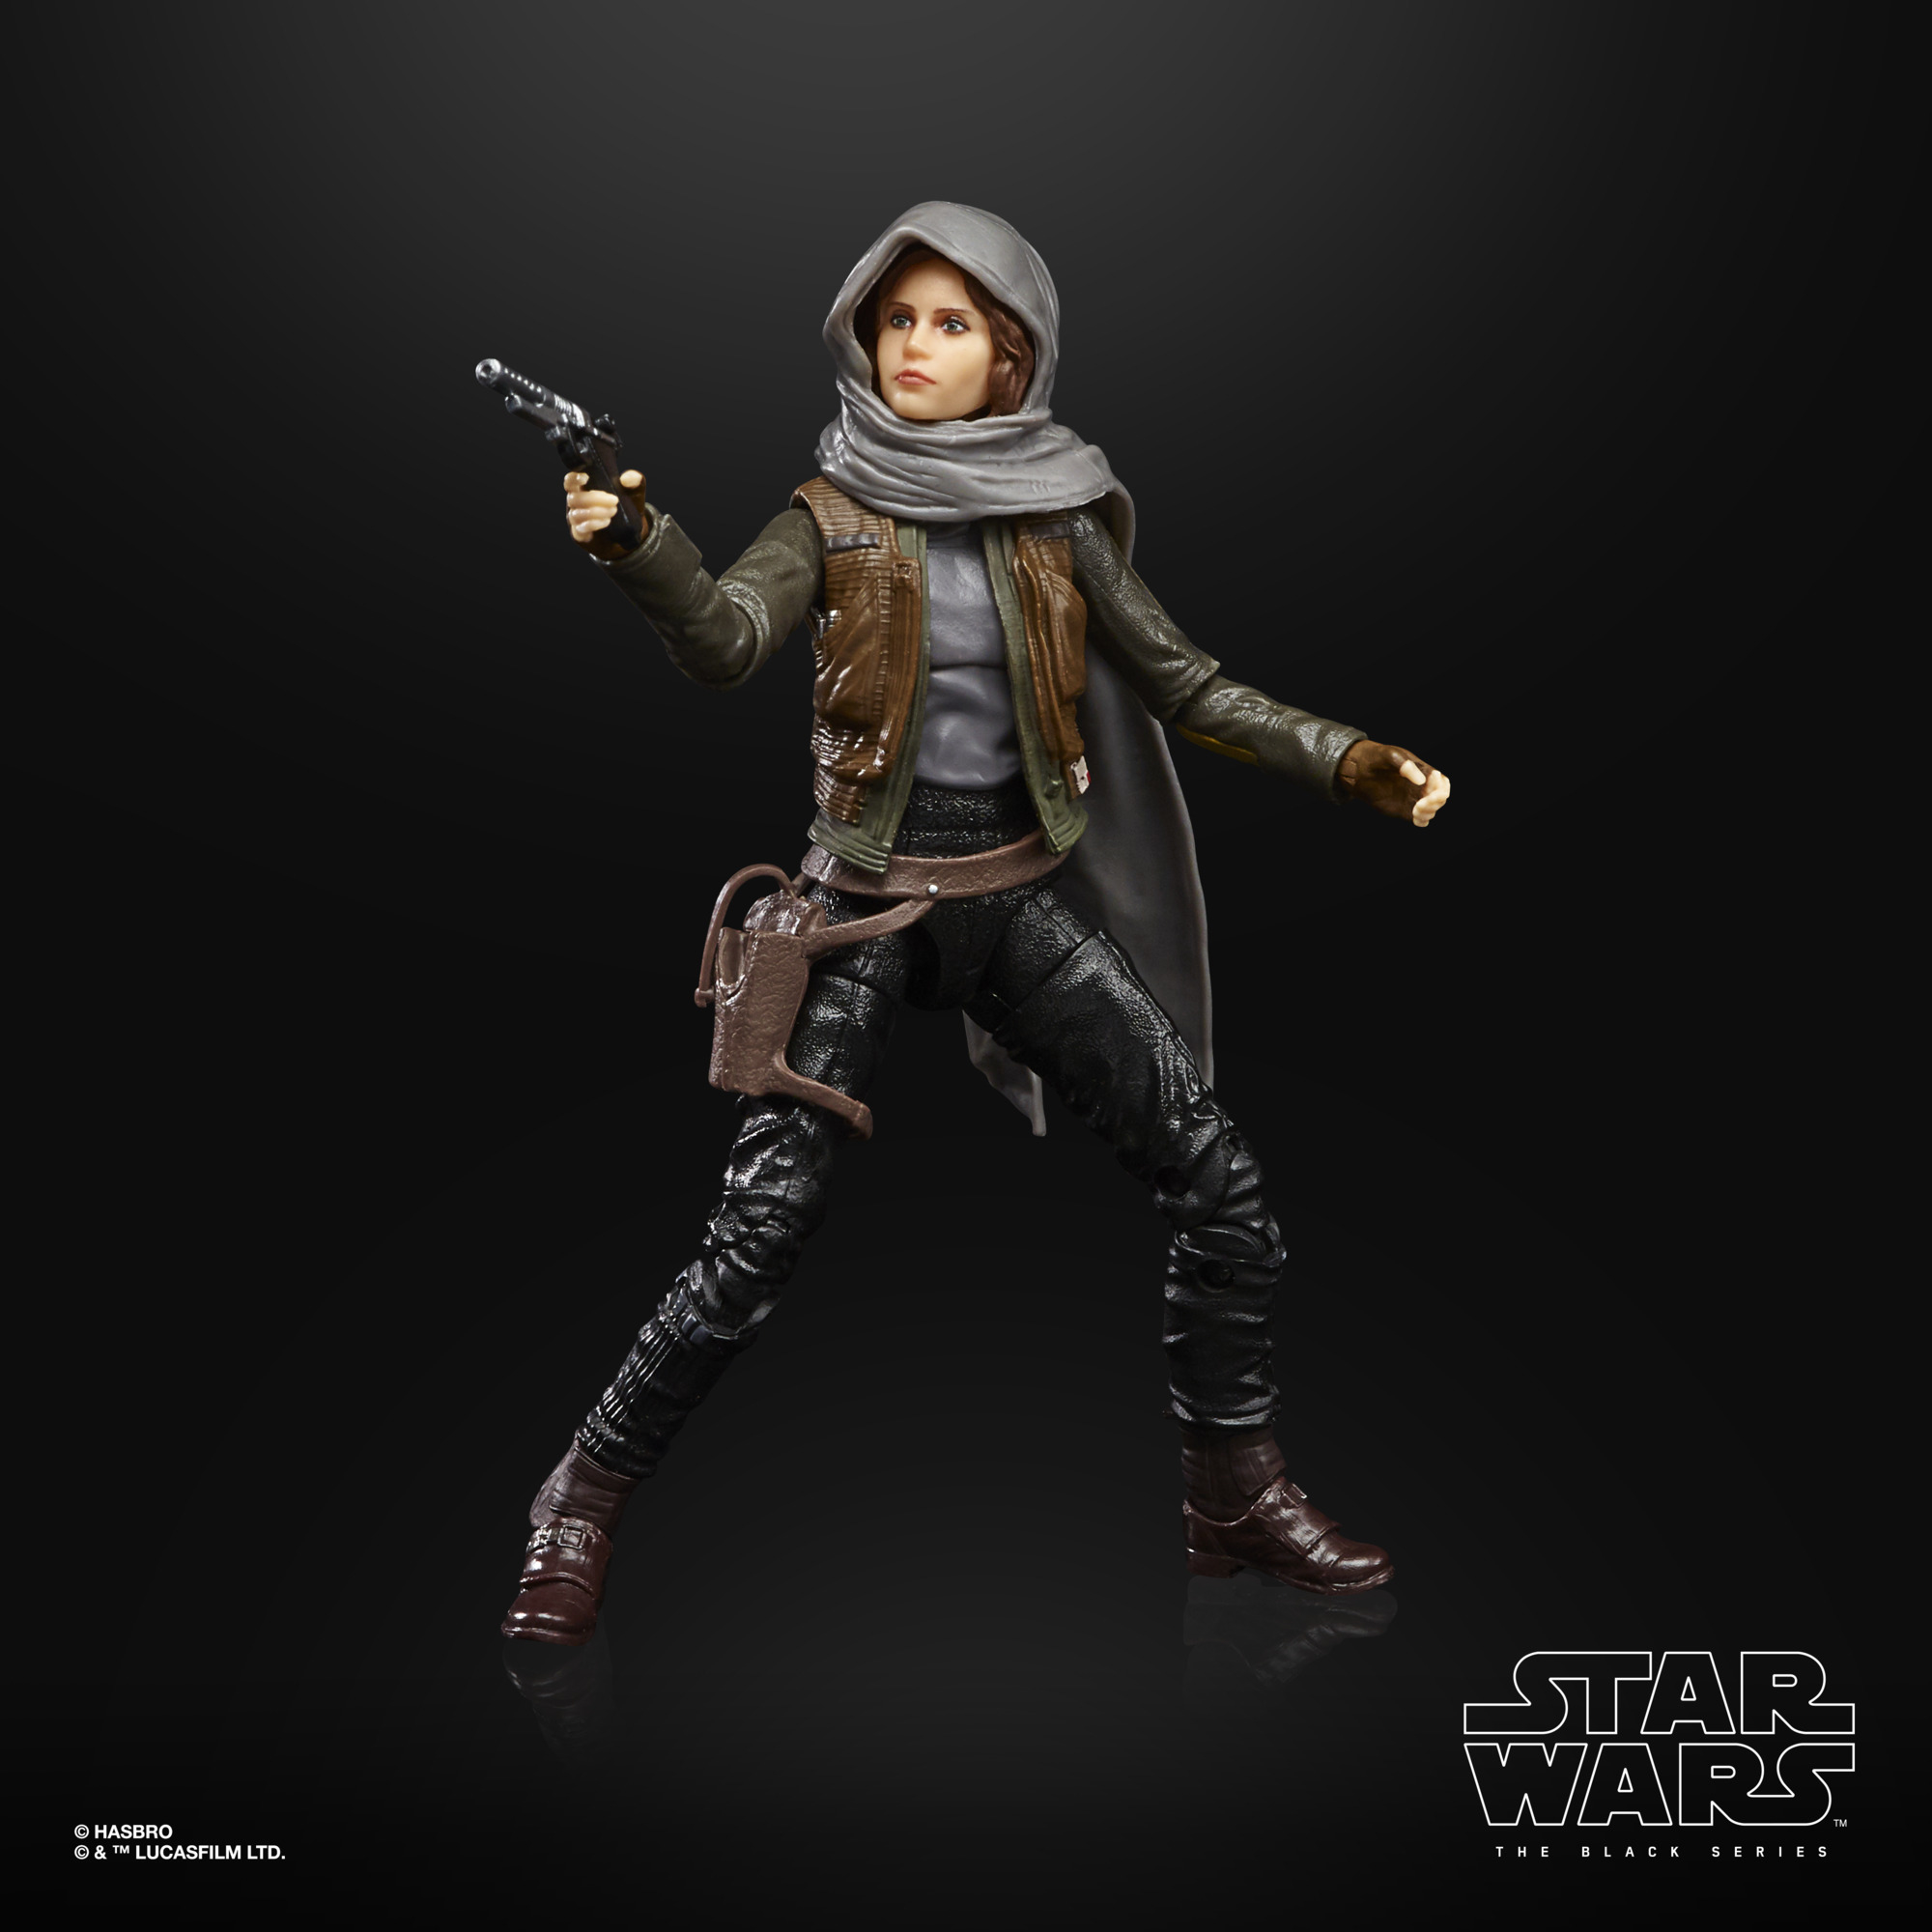 Star Wars - The Black Series - Rogue One - Jynn Erso Action Figure